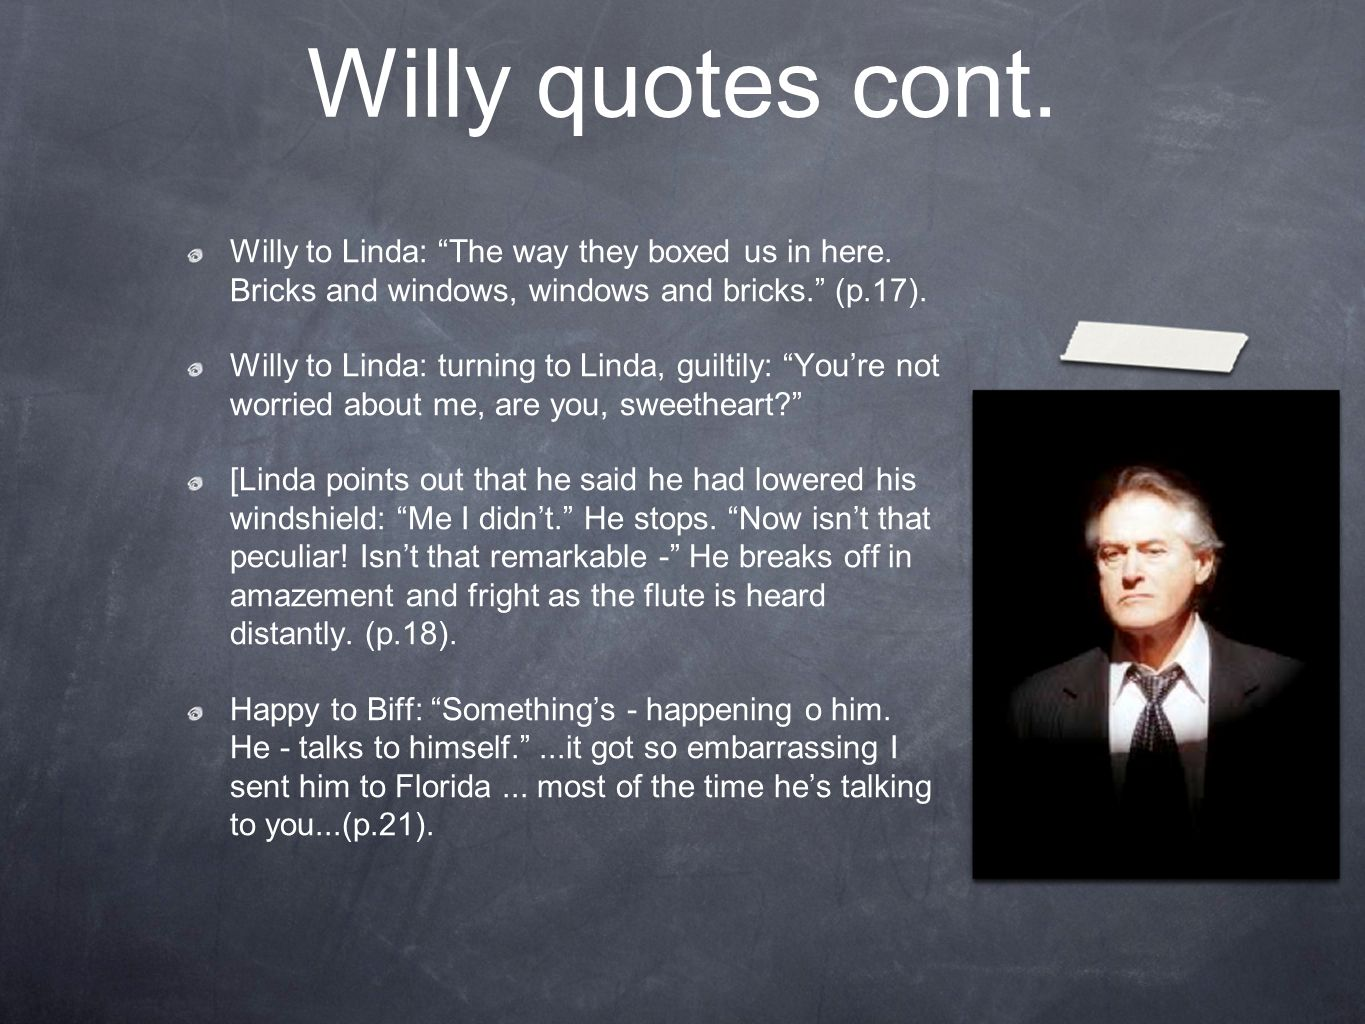 Willy quotes cont. Willy to Linda: The way they boxed us in here. Bricks and windows, windows and bricks. (p.17).